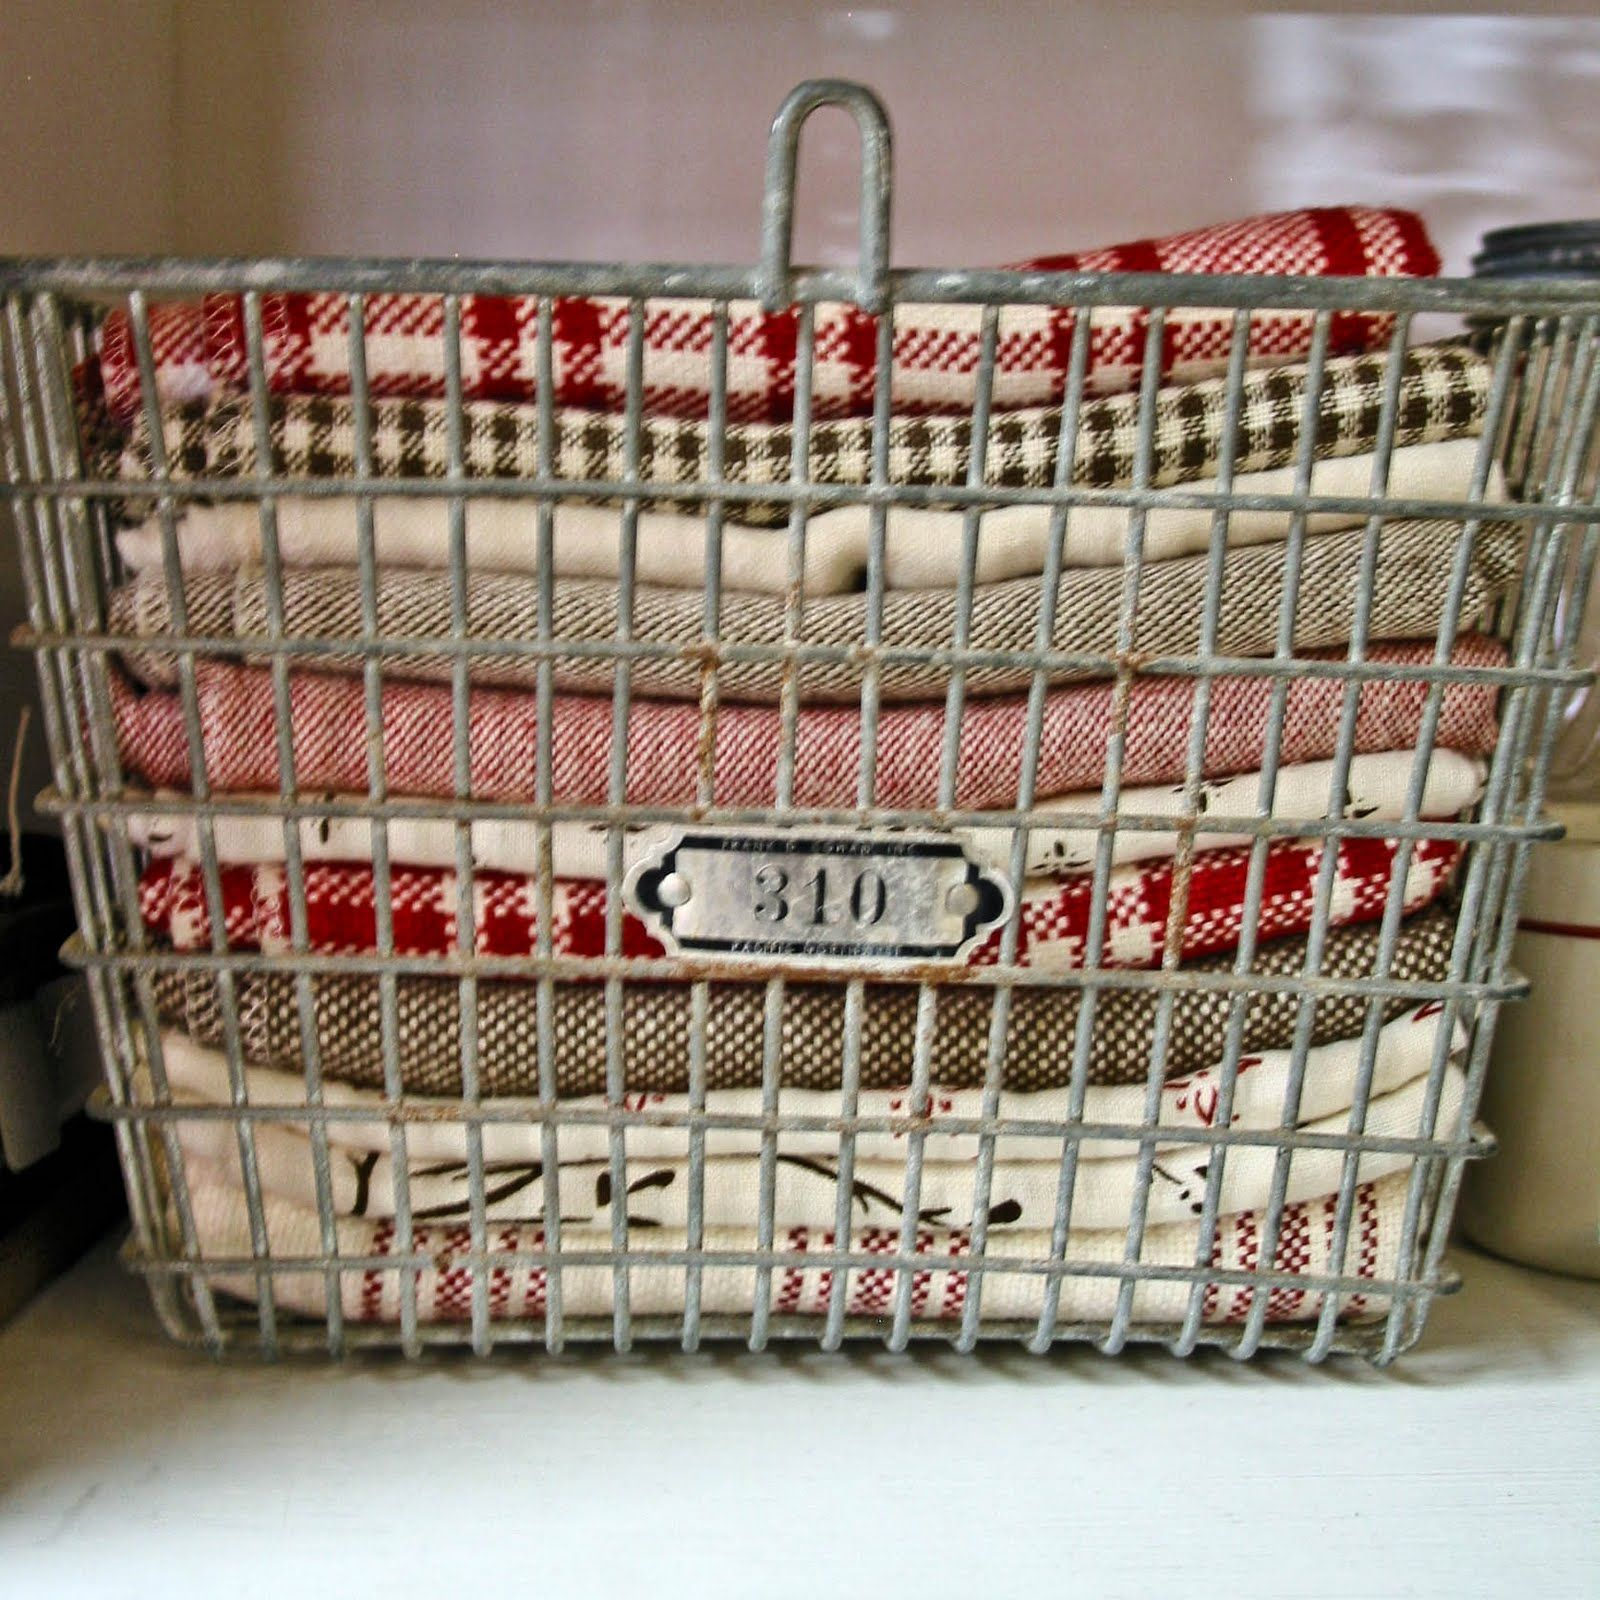 Kitchen Towel Storage Ideas Part - 26: Wire Baskets - Store Pretty Cloth Napkins, Table Cloths, Dish Towels Would  Love To Have A Set Of Old Gym Lockers. Would Work Great For Fabric Storage.